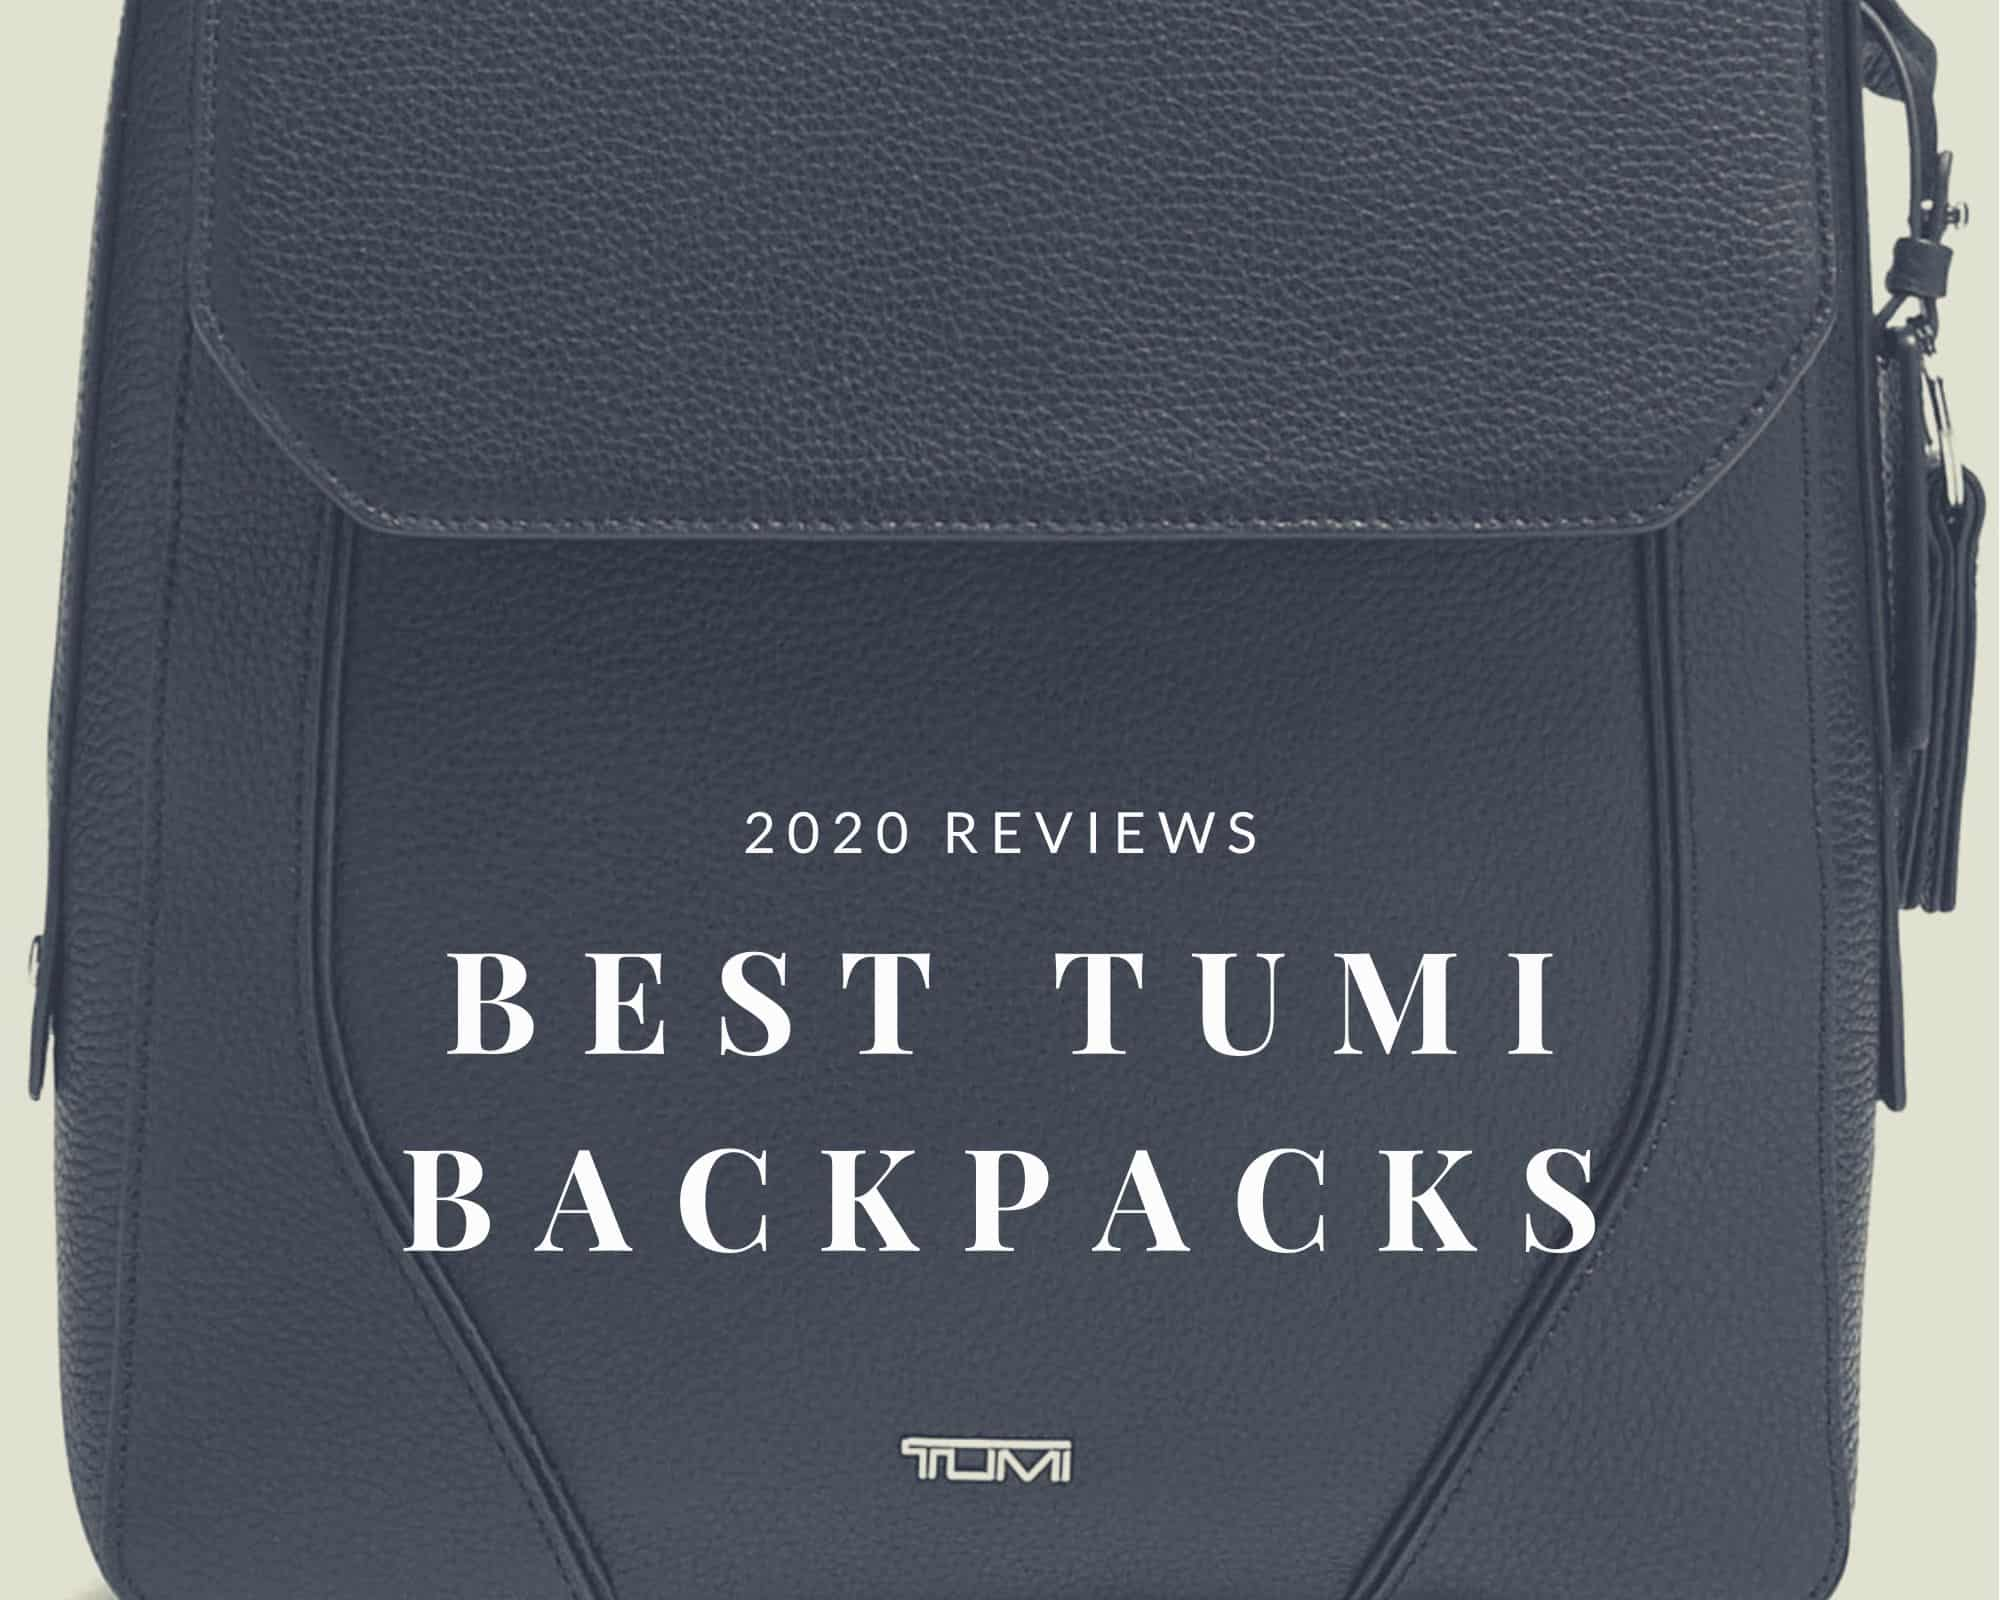 Best Backpacks 2020.Best Tumi Backpack Review In 2020 Travelgal Nicole Travel Blog